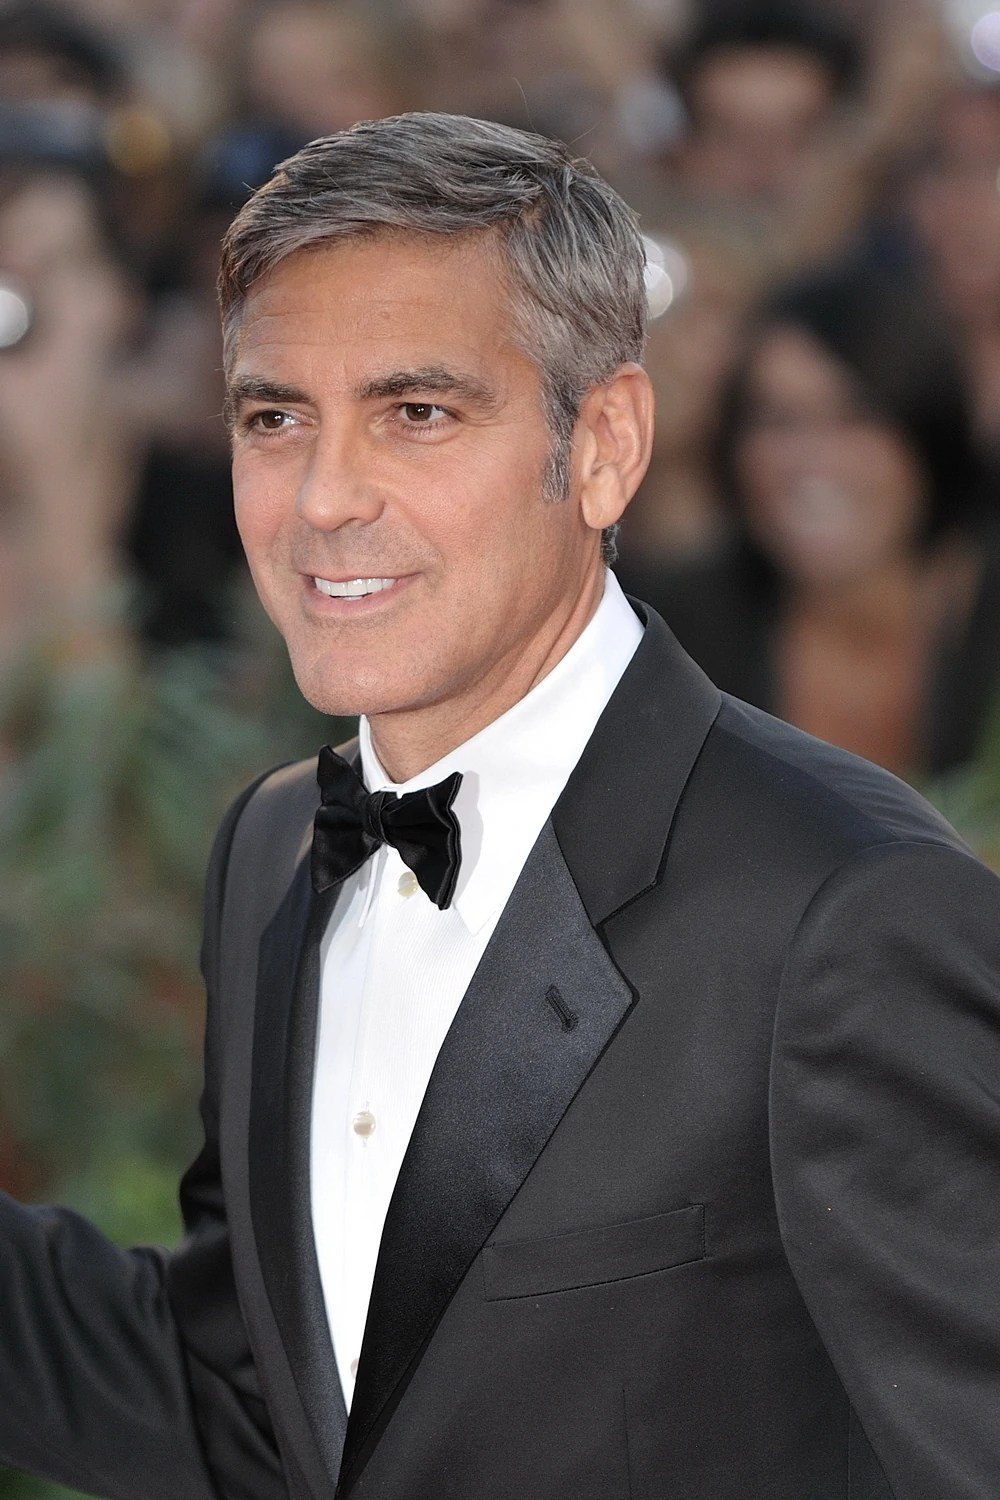 George Clooney   Coen Brothers Wiki   FANDOM powered by Wikia George Clooney